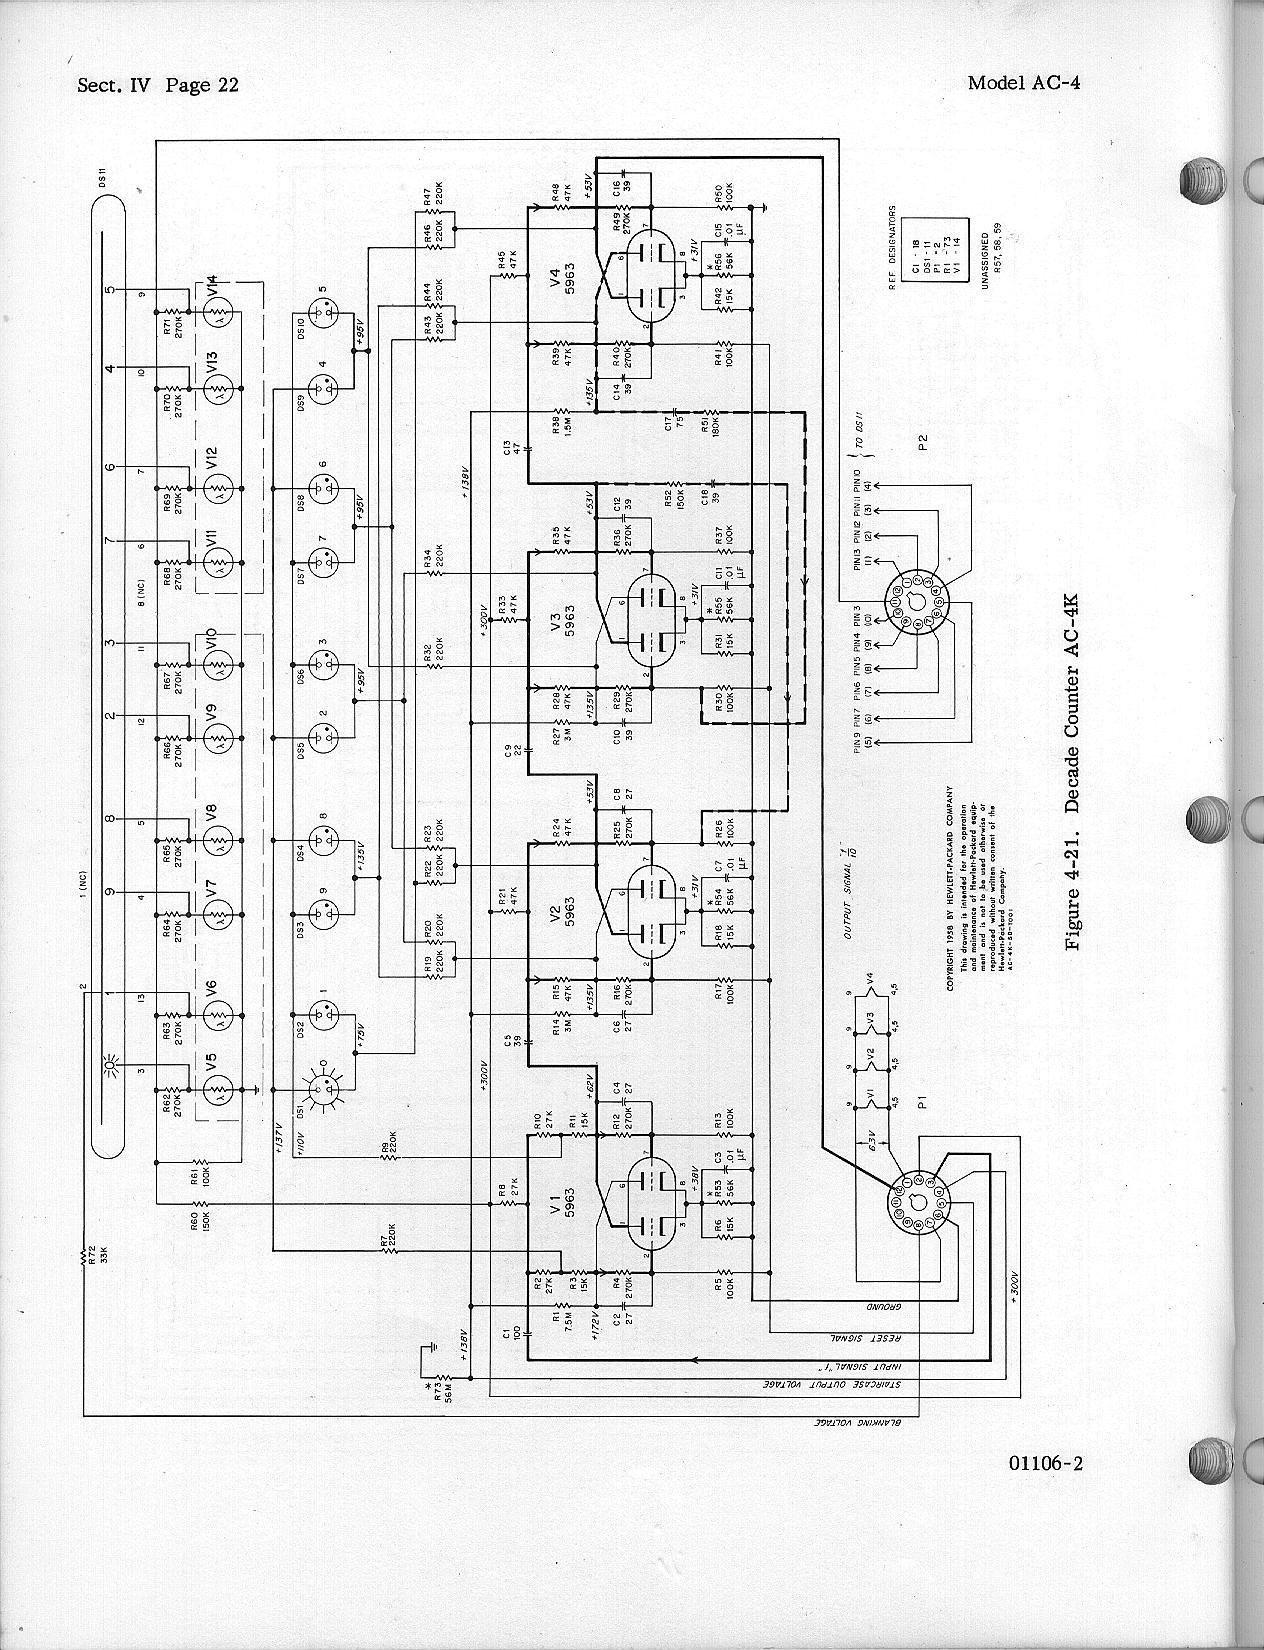 Hewlett Packard Decade Counters Ac 4 Nixieclock 1 Schematic And Sourcecode Availiable For Diagram Parts Page